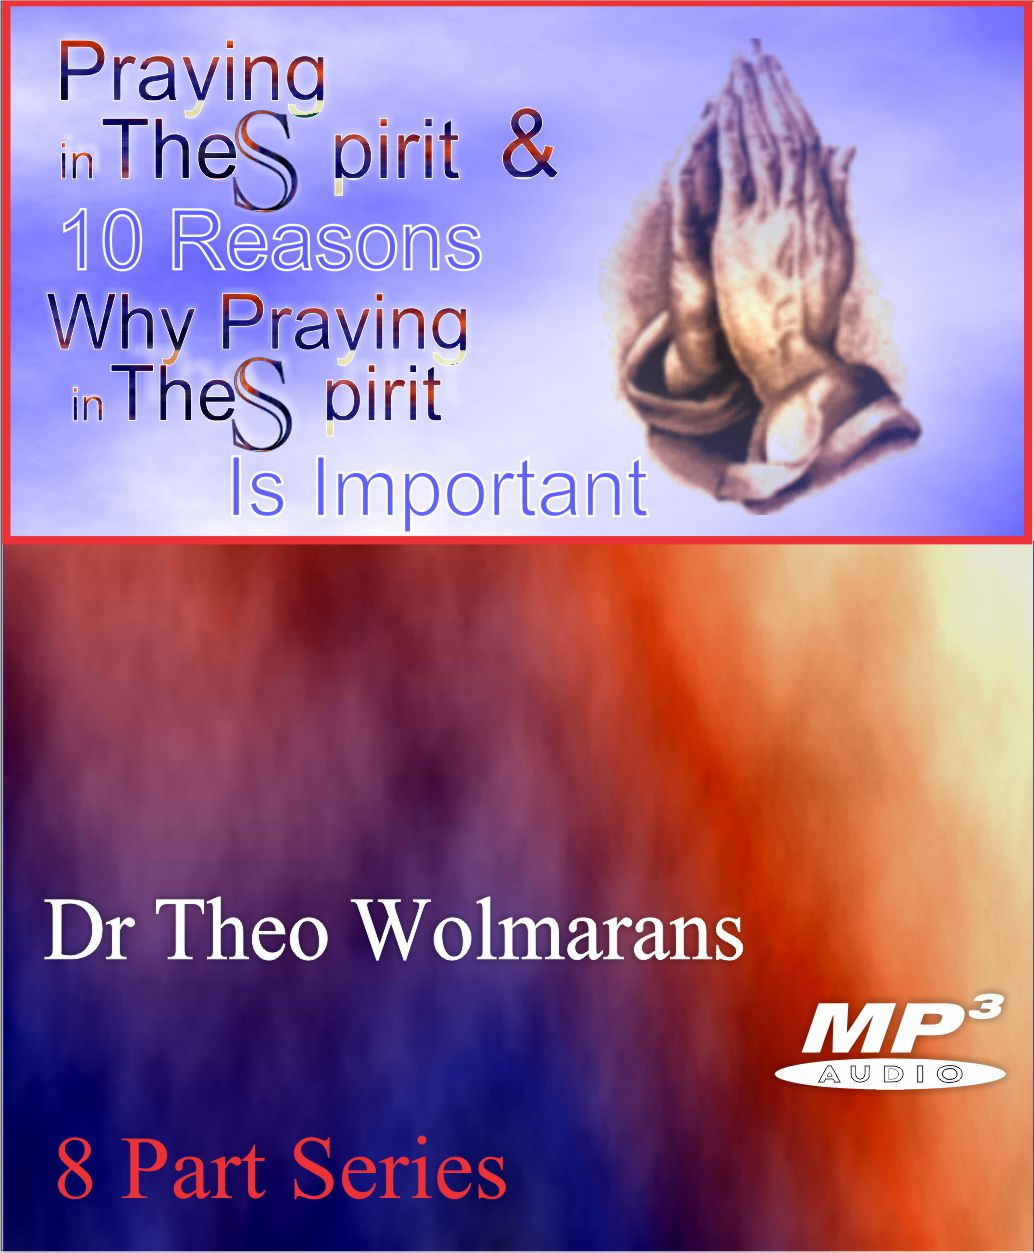 Praying in the Spirit & 10 Reasons Why Praying in the Spirit is Important – USB